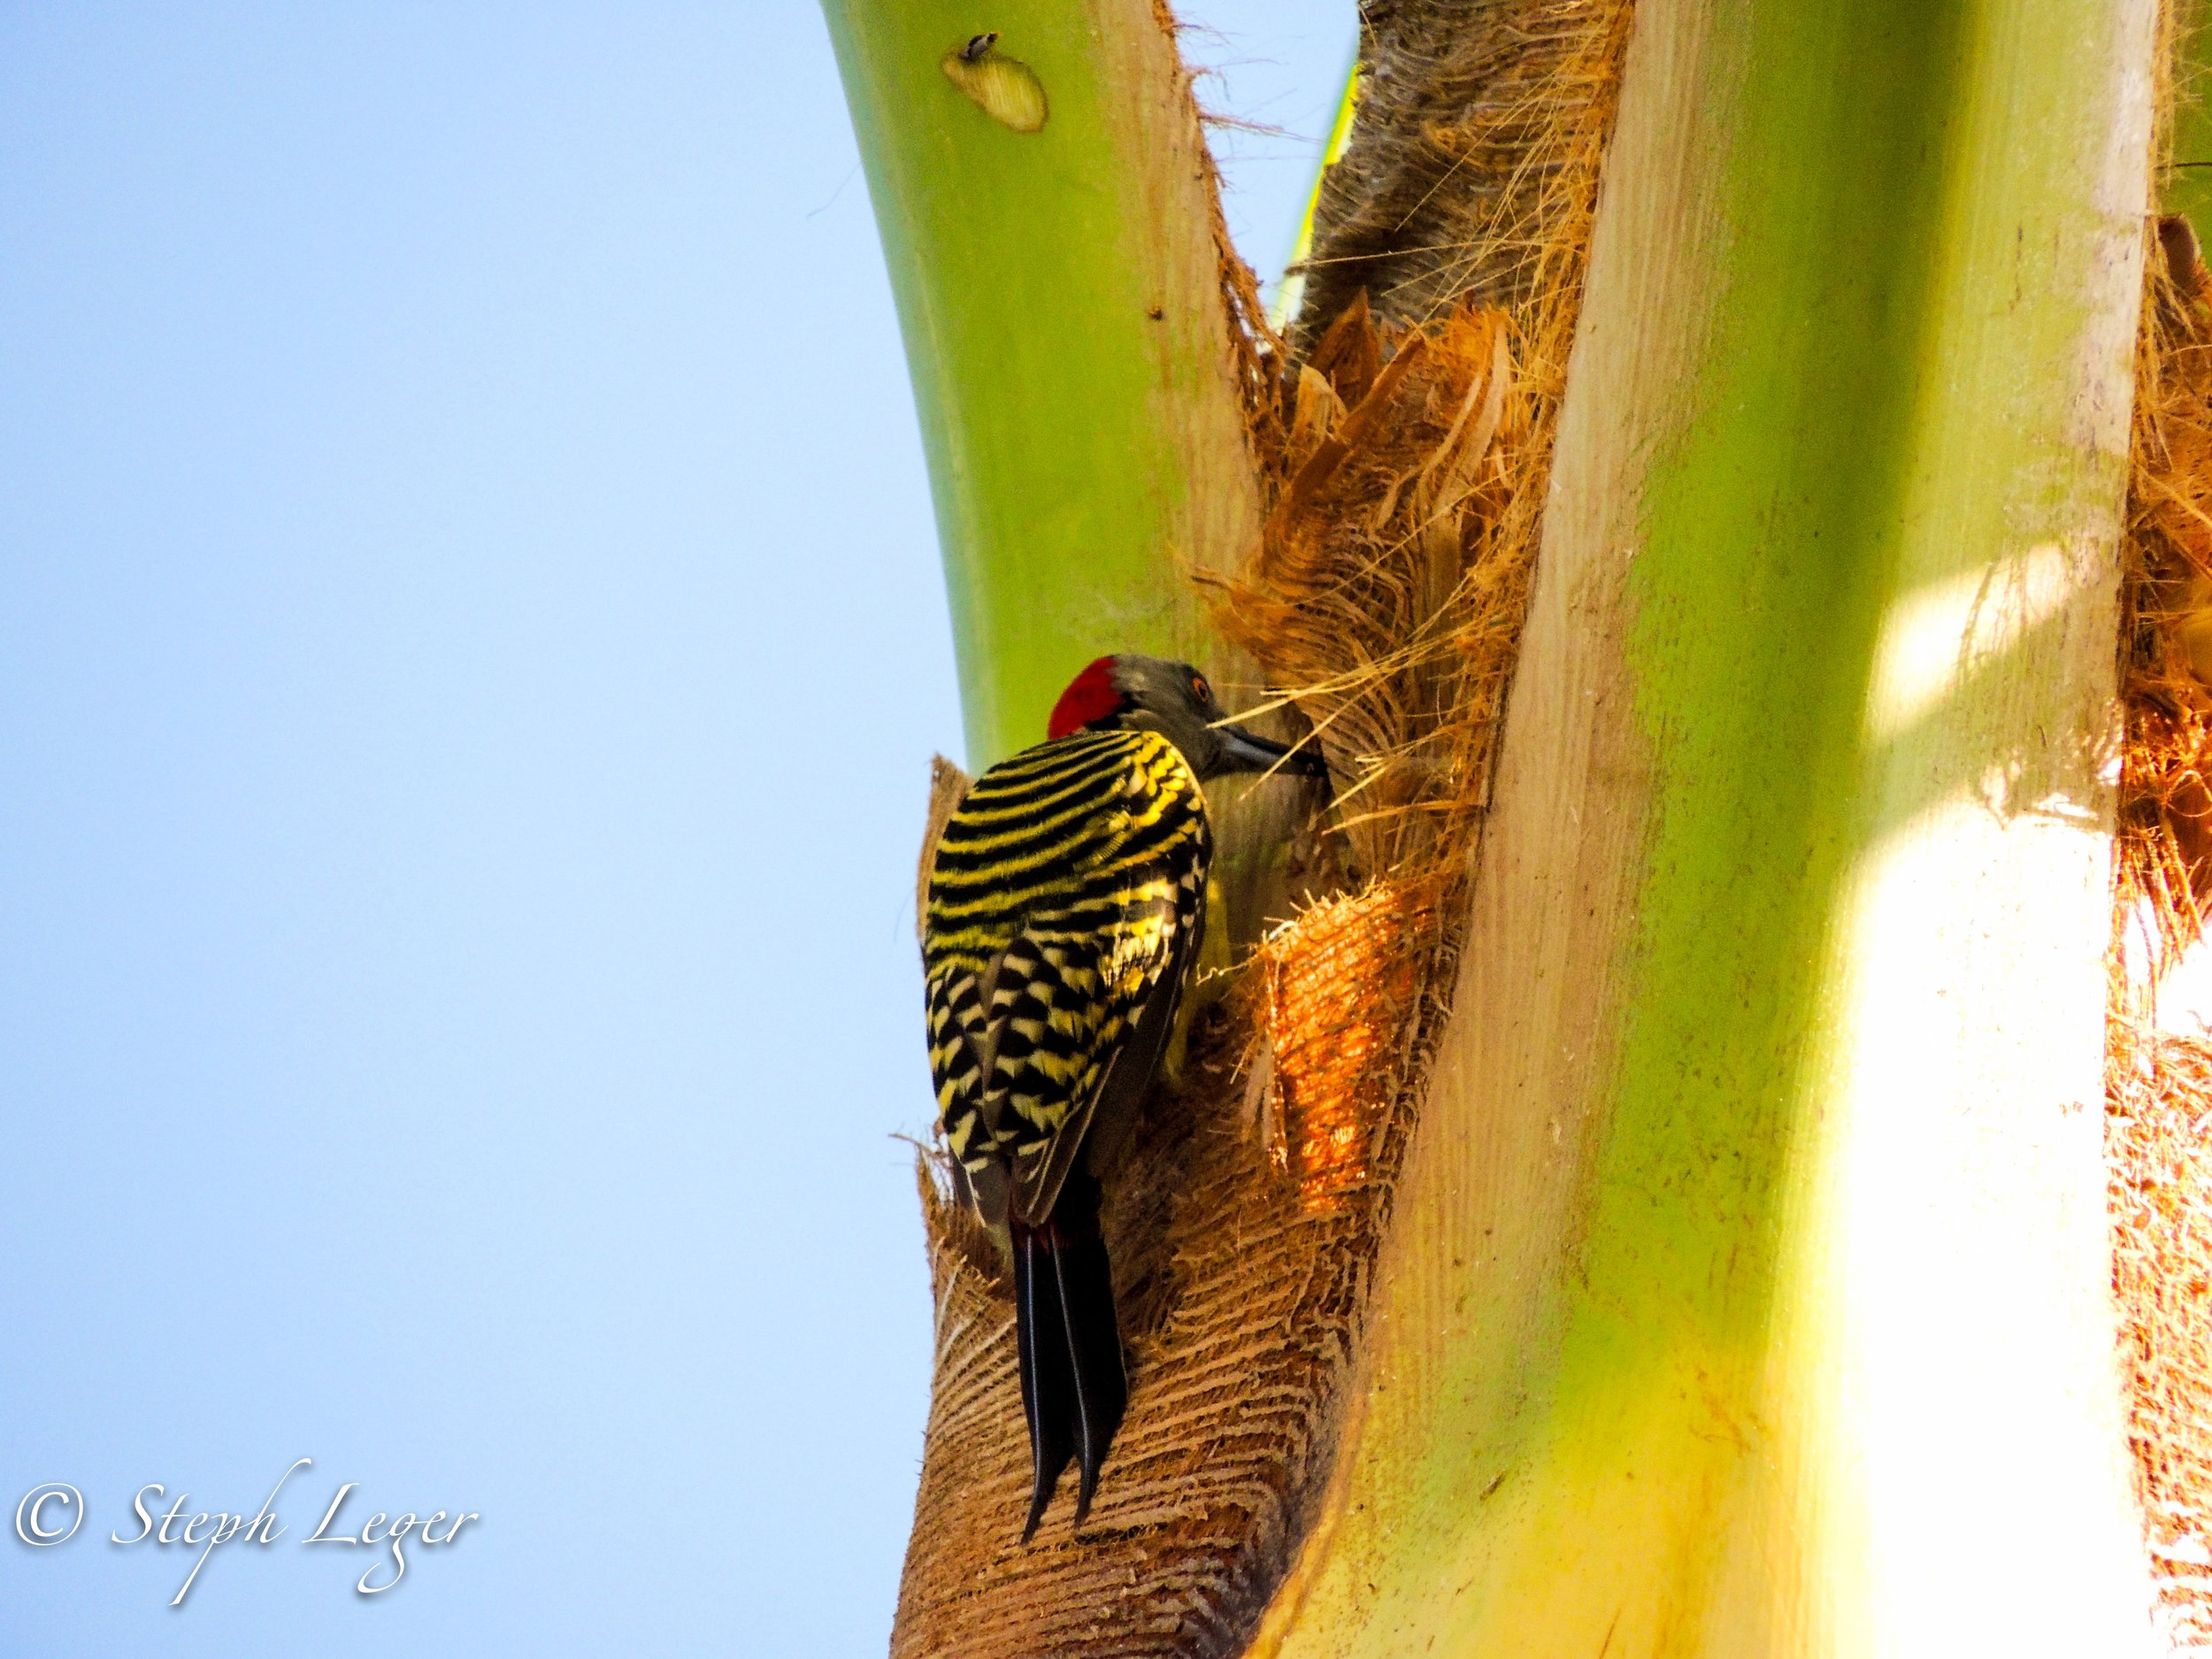 Hispaniolan Woodpecker (Melanerpes striatus) feeding